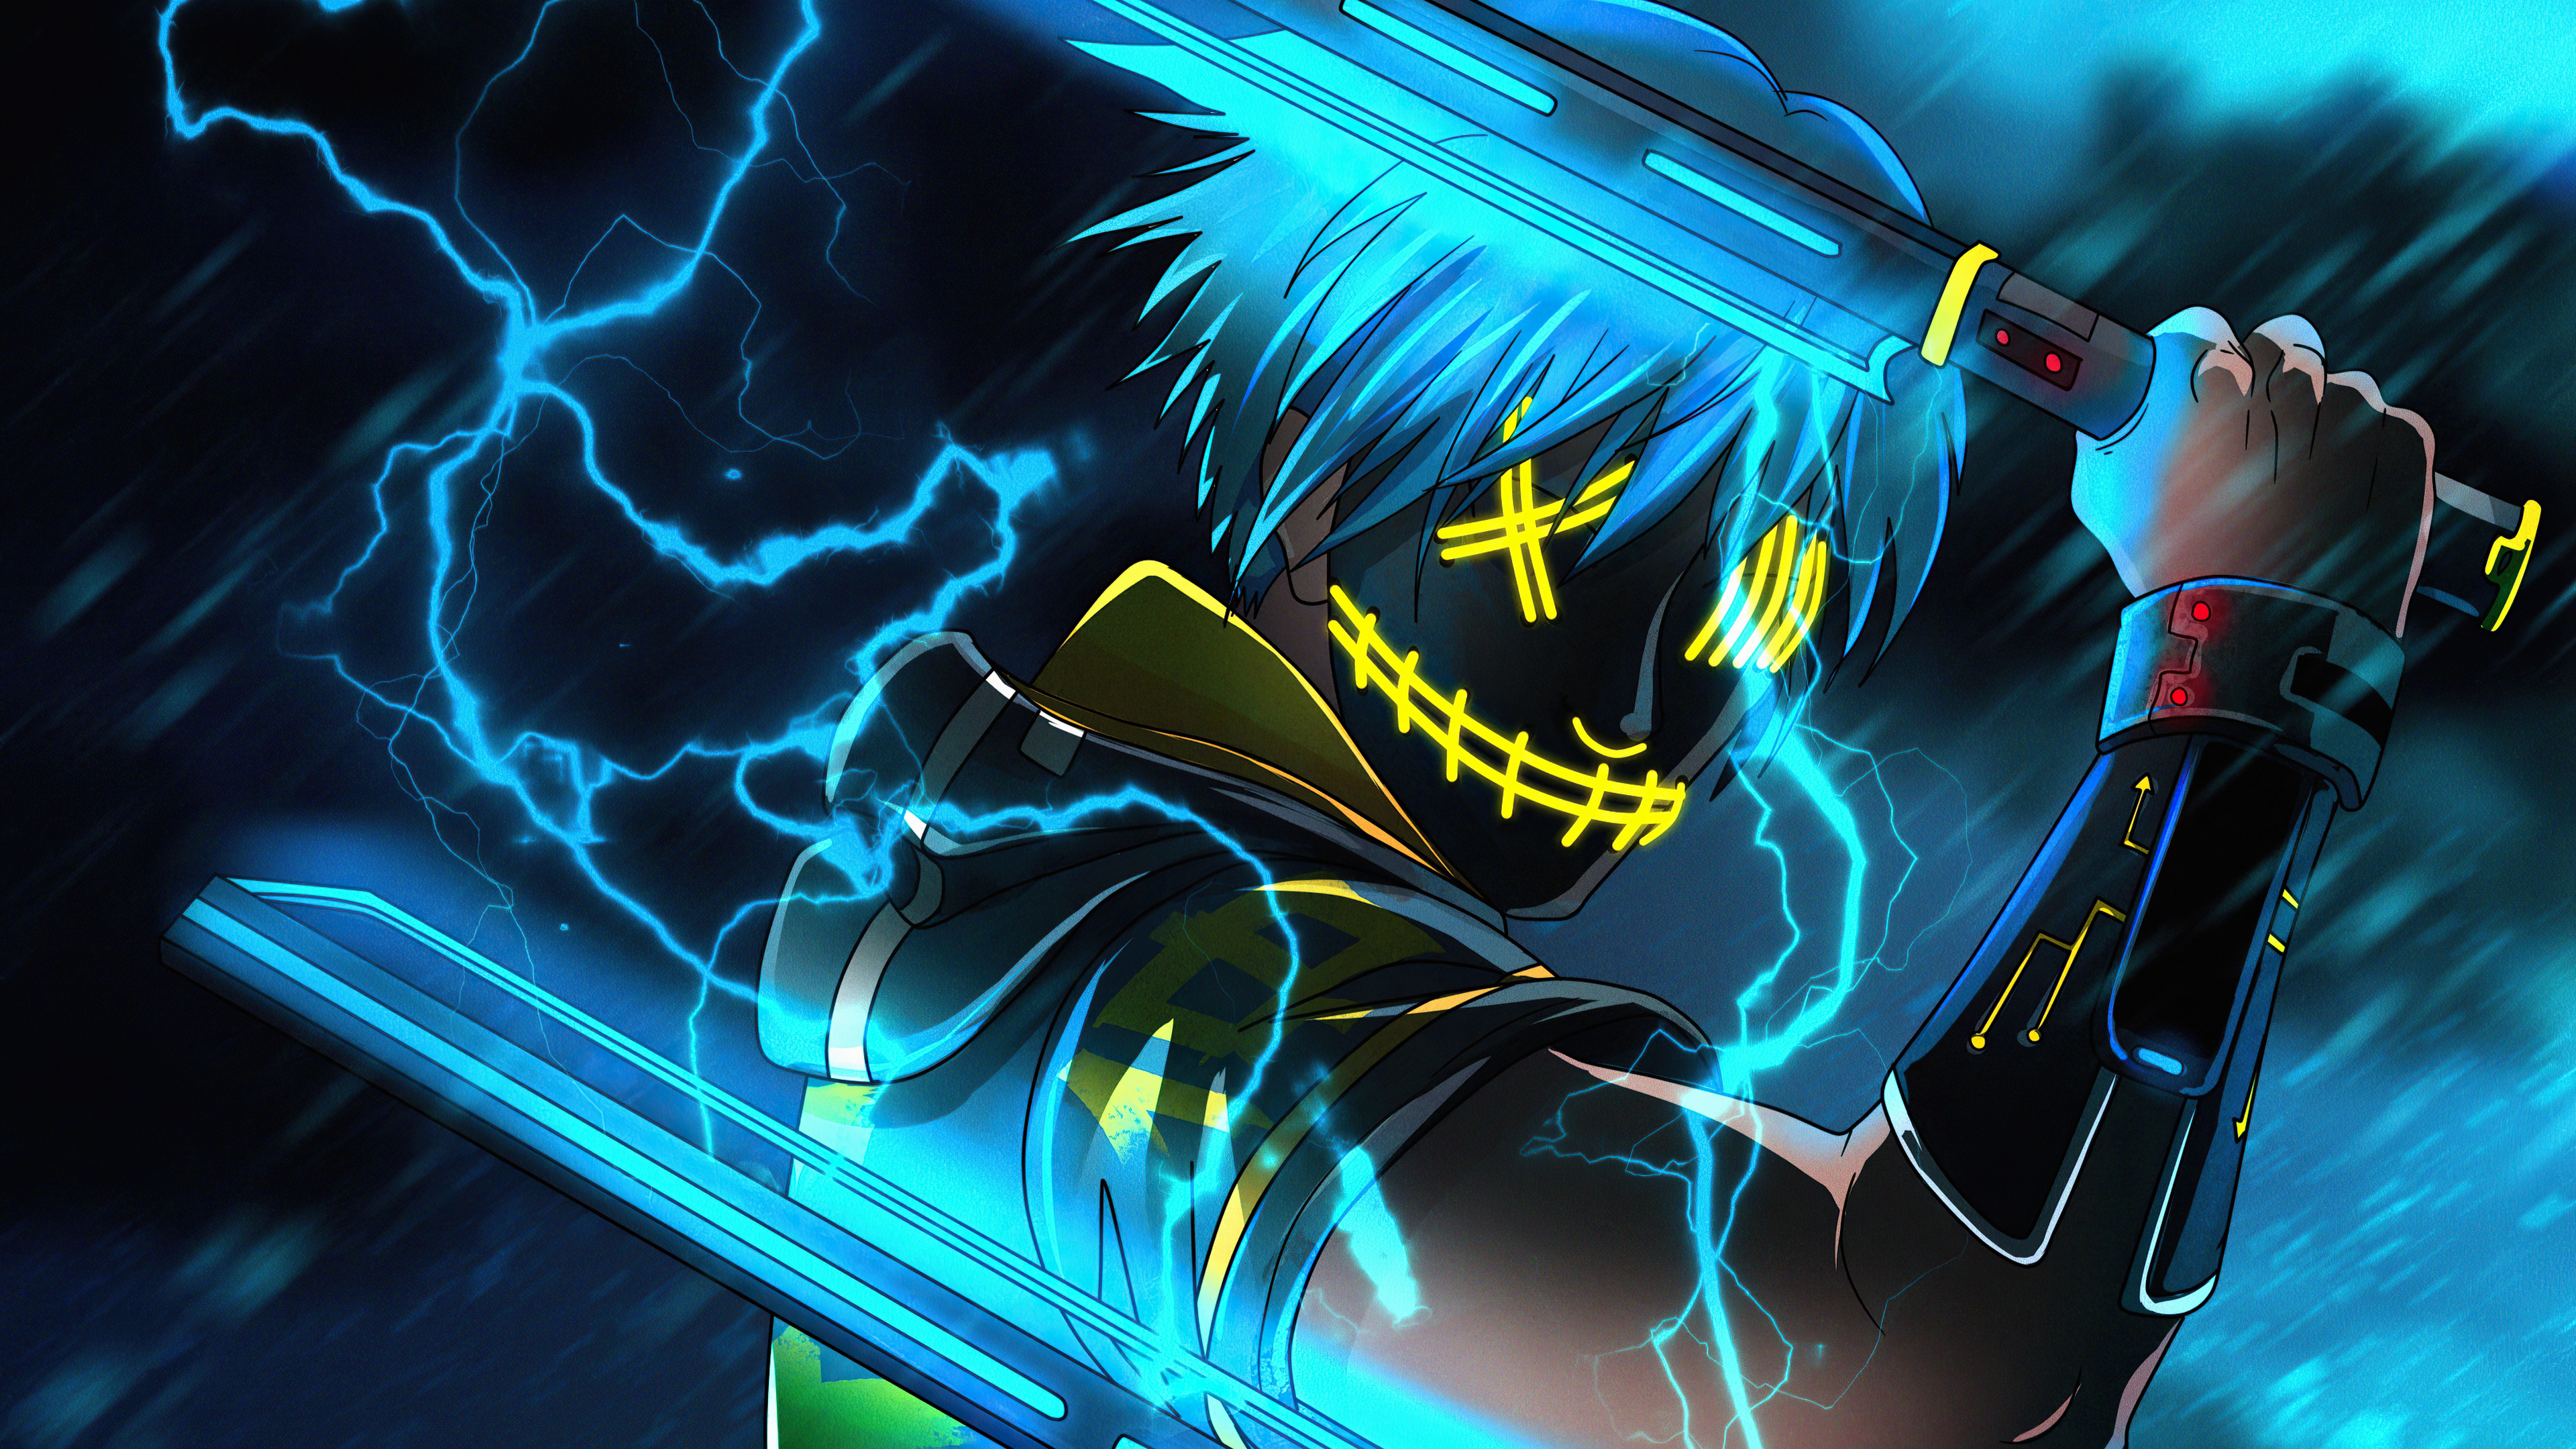 Anime Ninja 4k Hd Anime 4k Wallpapers Images Backgrounds Photos And Pictures